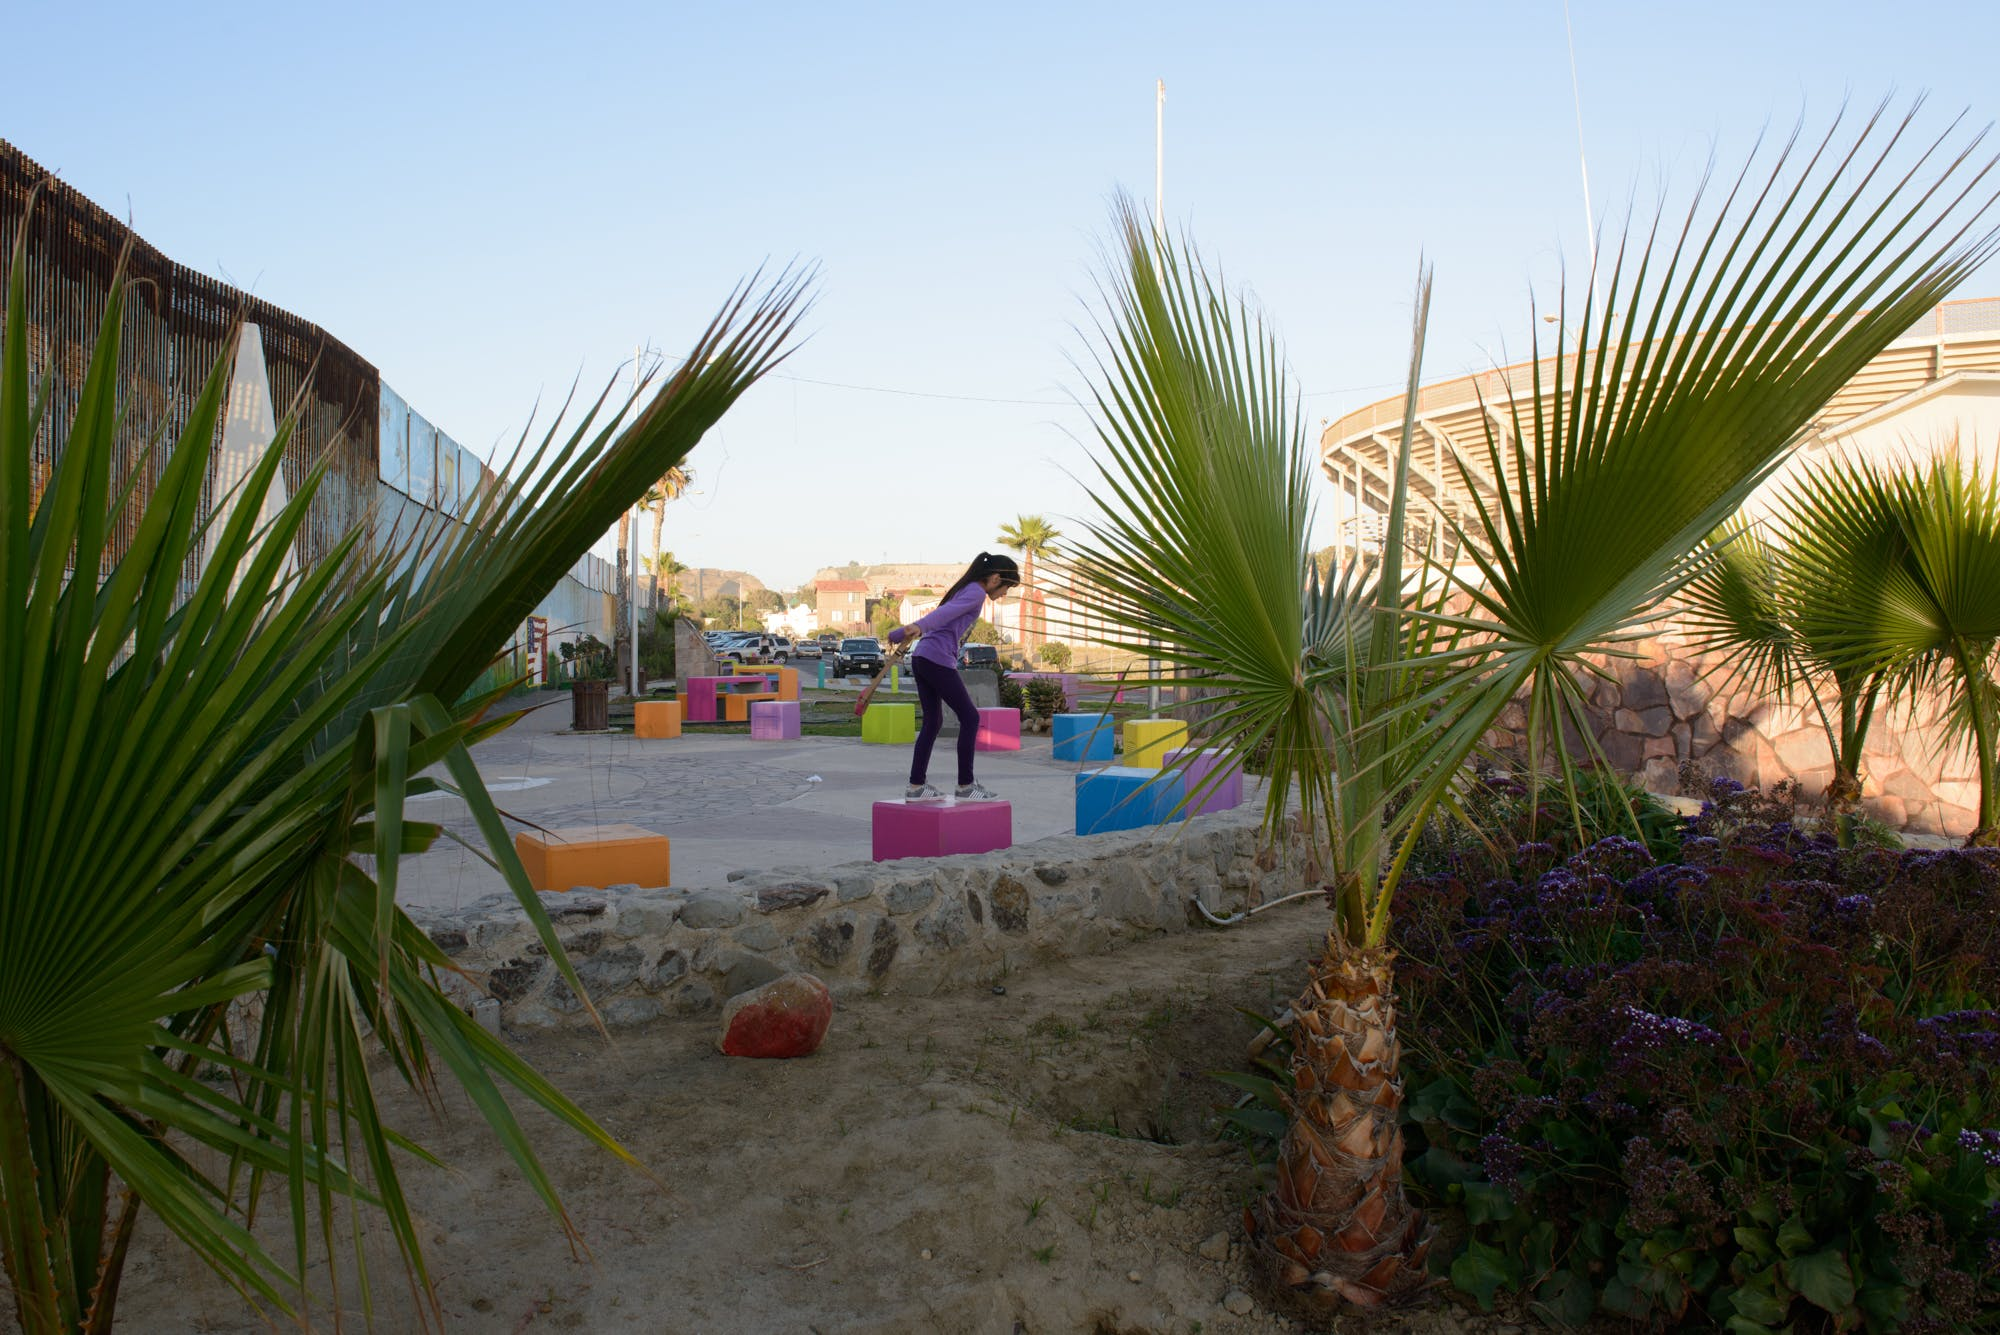 A child plays near the wall marking the border between the U.S. and Mexico in Playas de Tijuana.